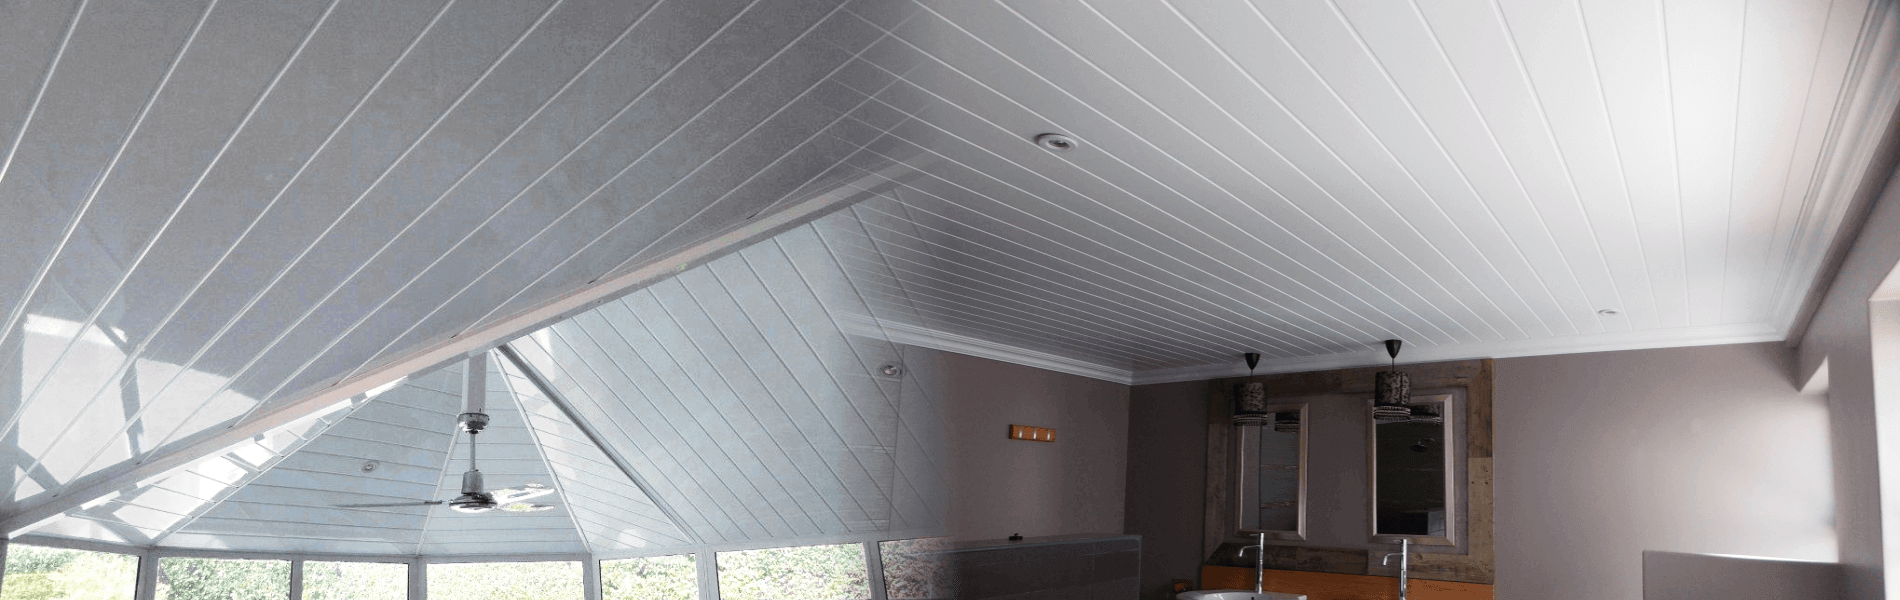 pvc-ceilings-durban-background